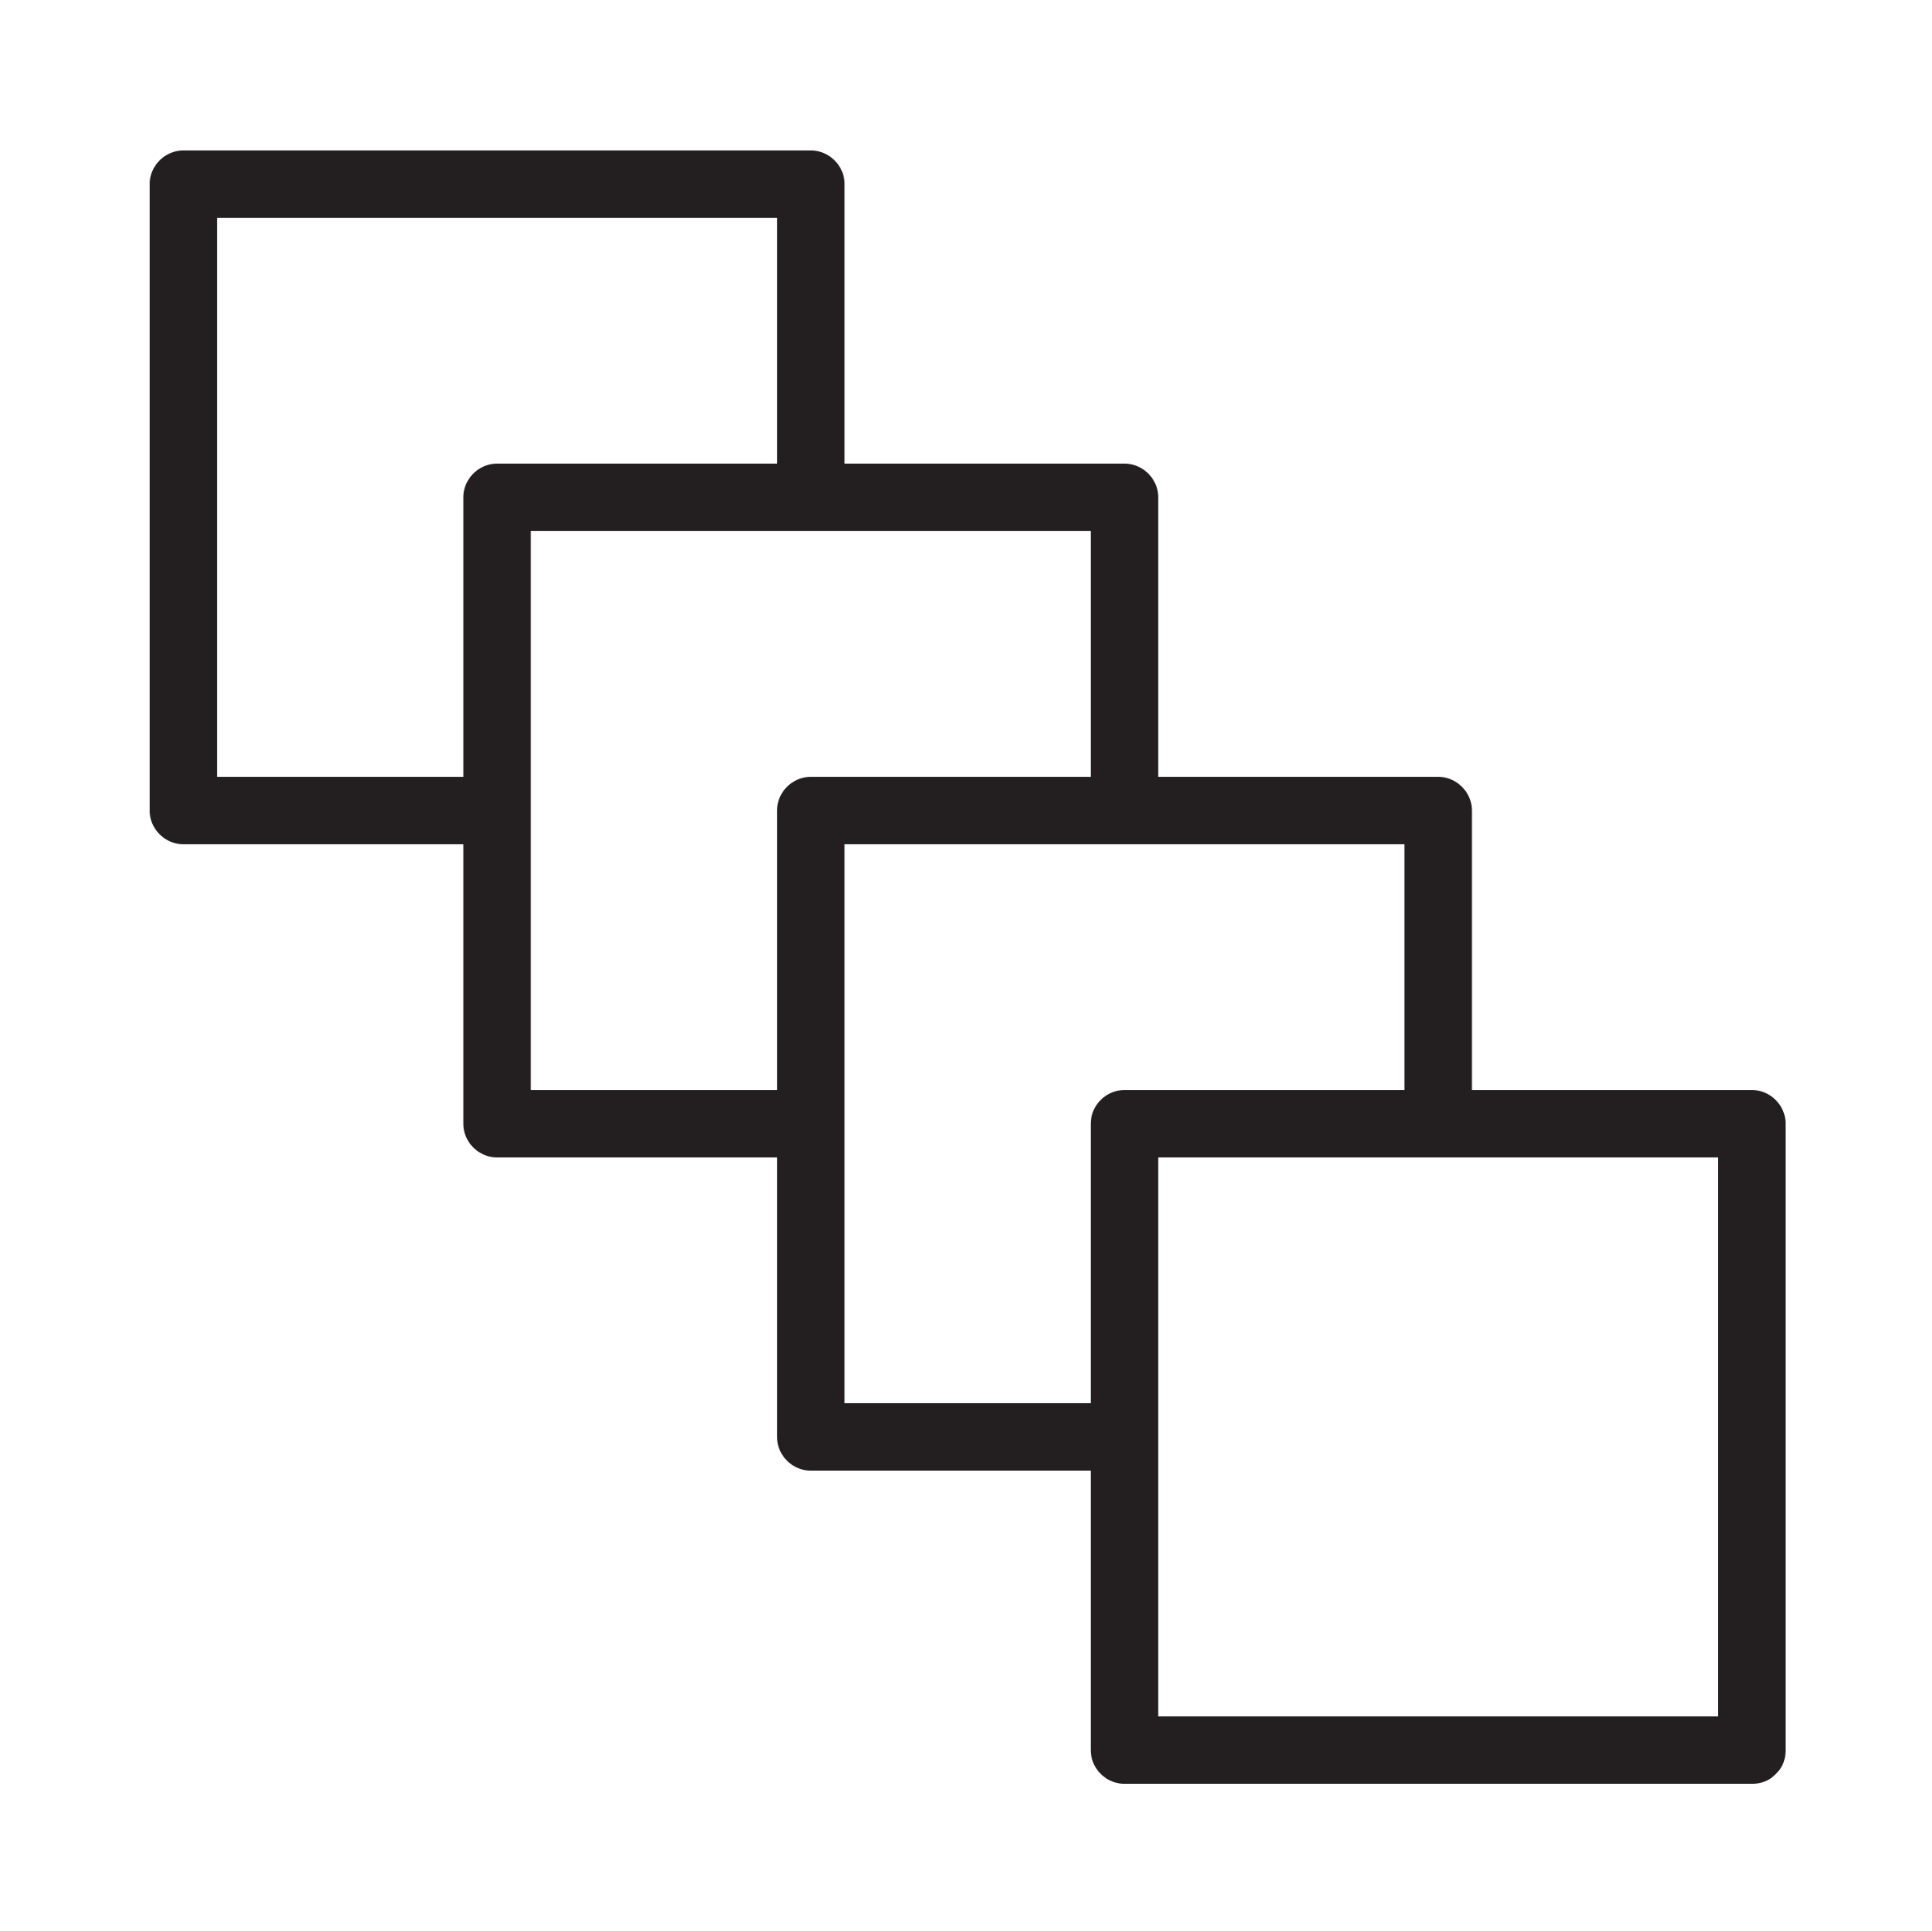 LOTS-OF-SQUARES.png